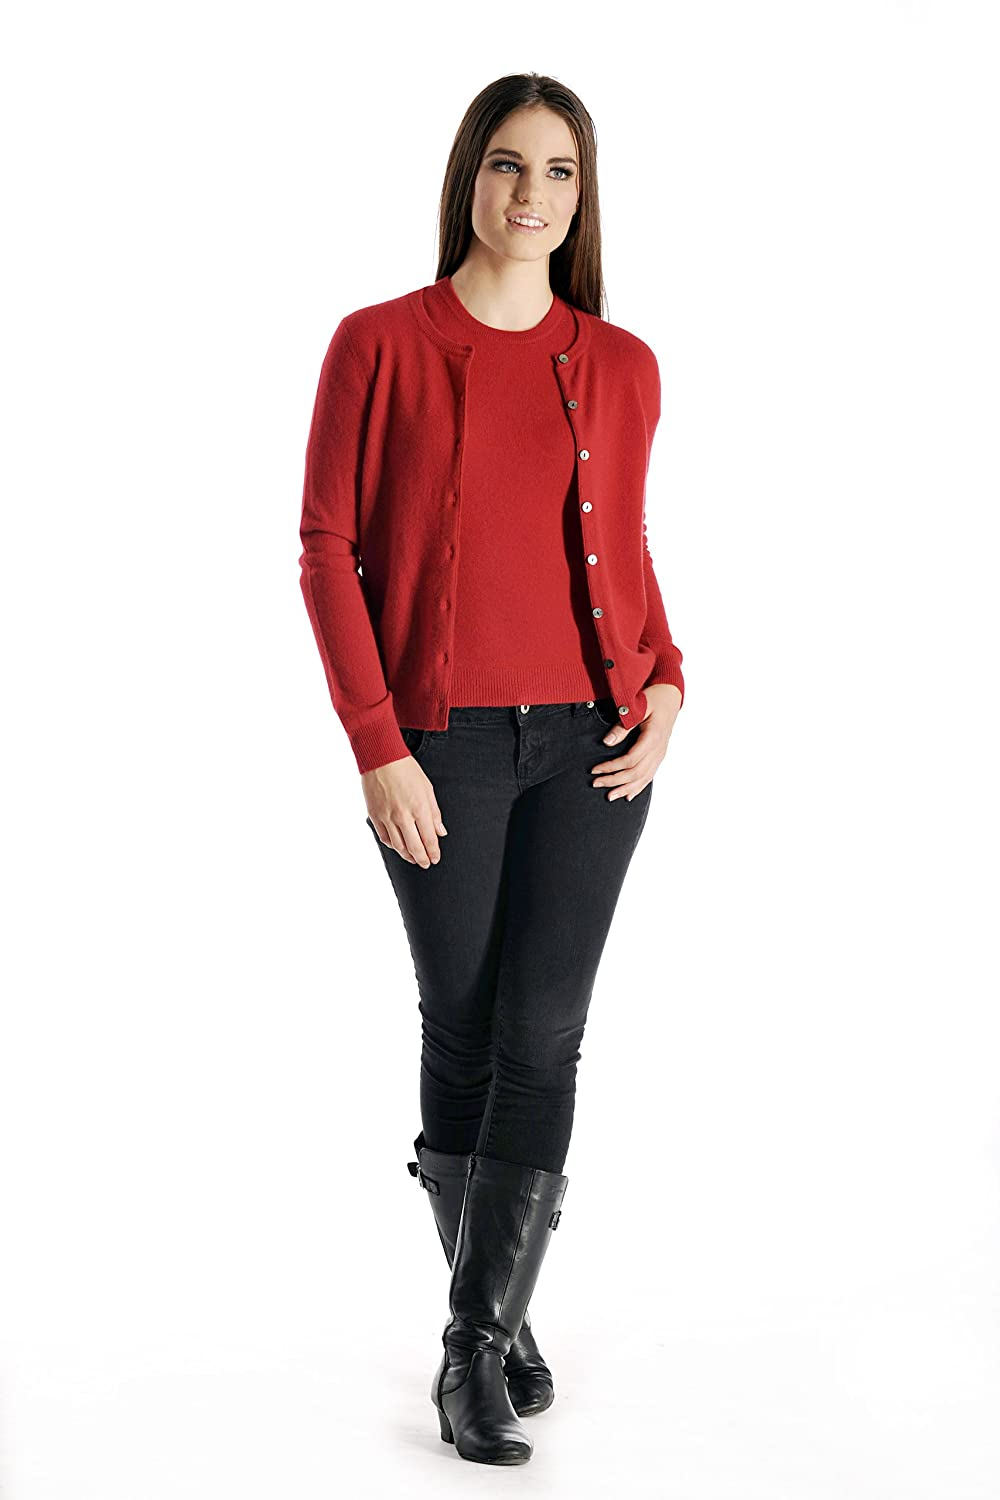 Women's Cashmere Cardigan Twin Sweater Set at Amazon Women's ...